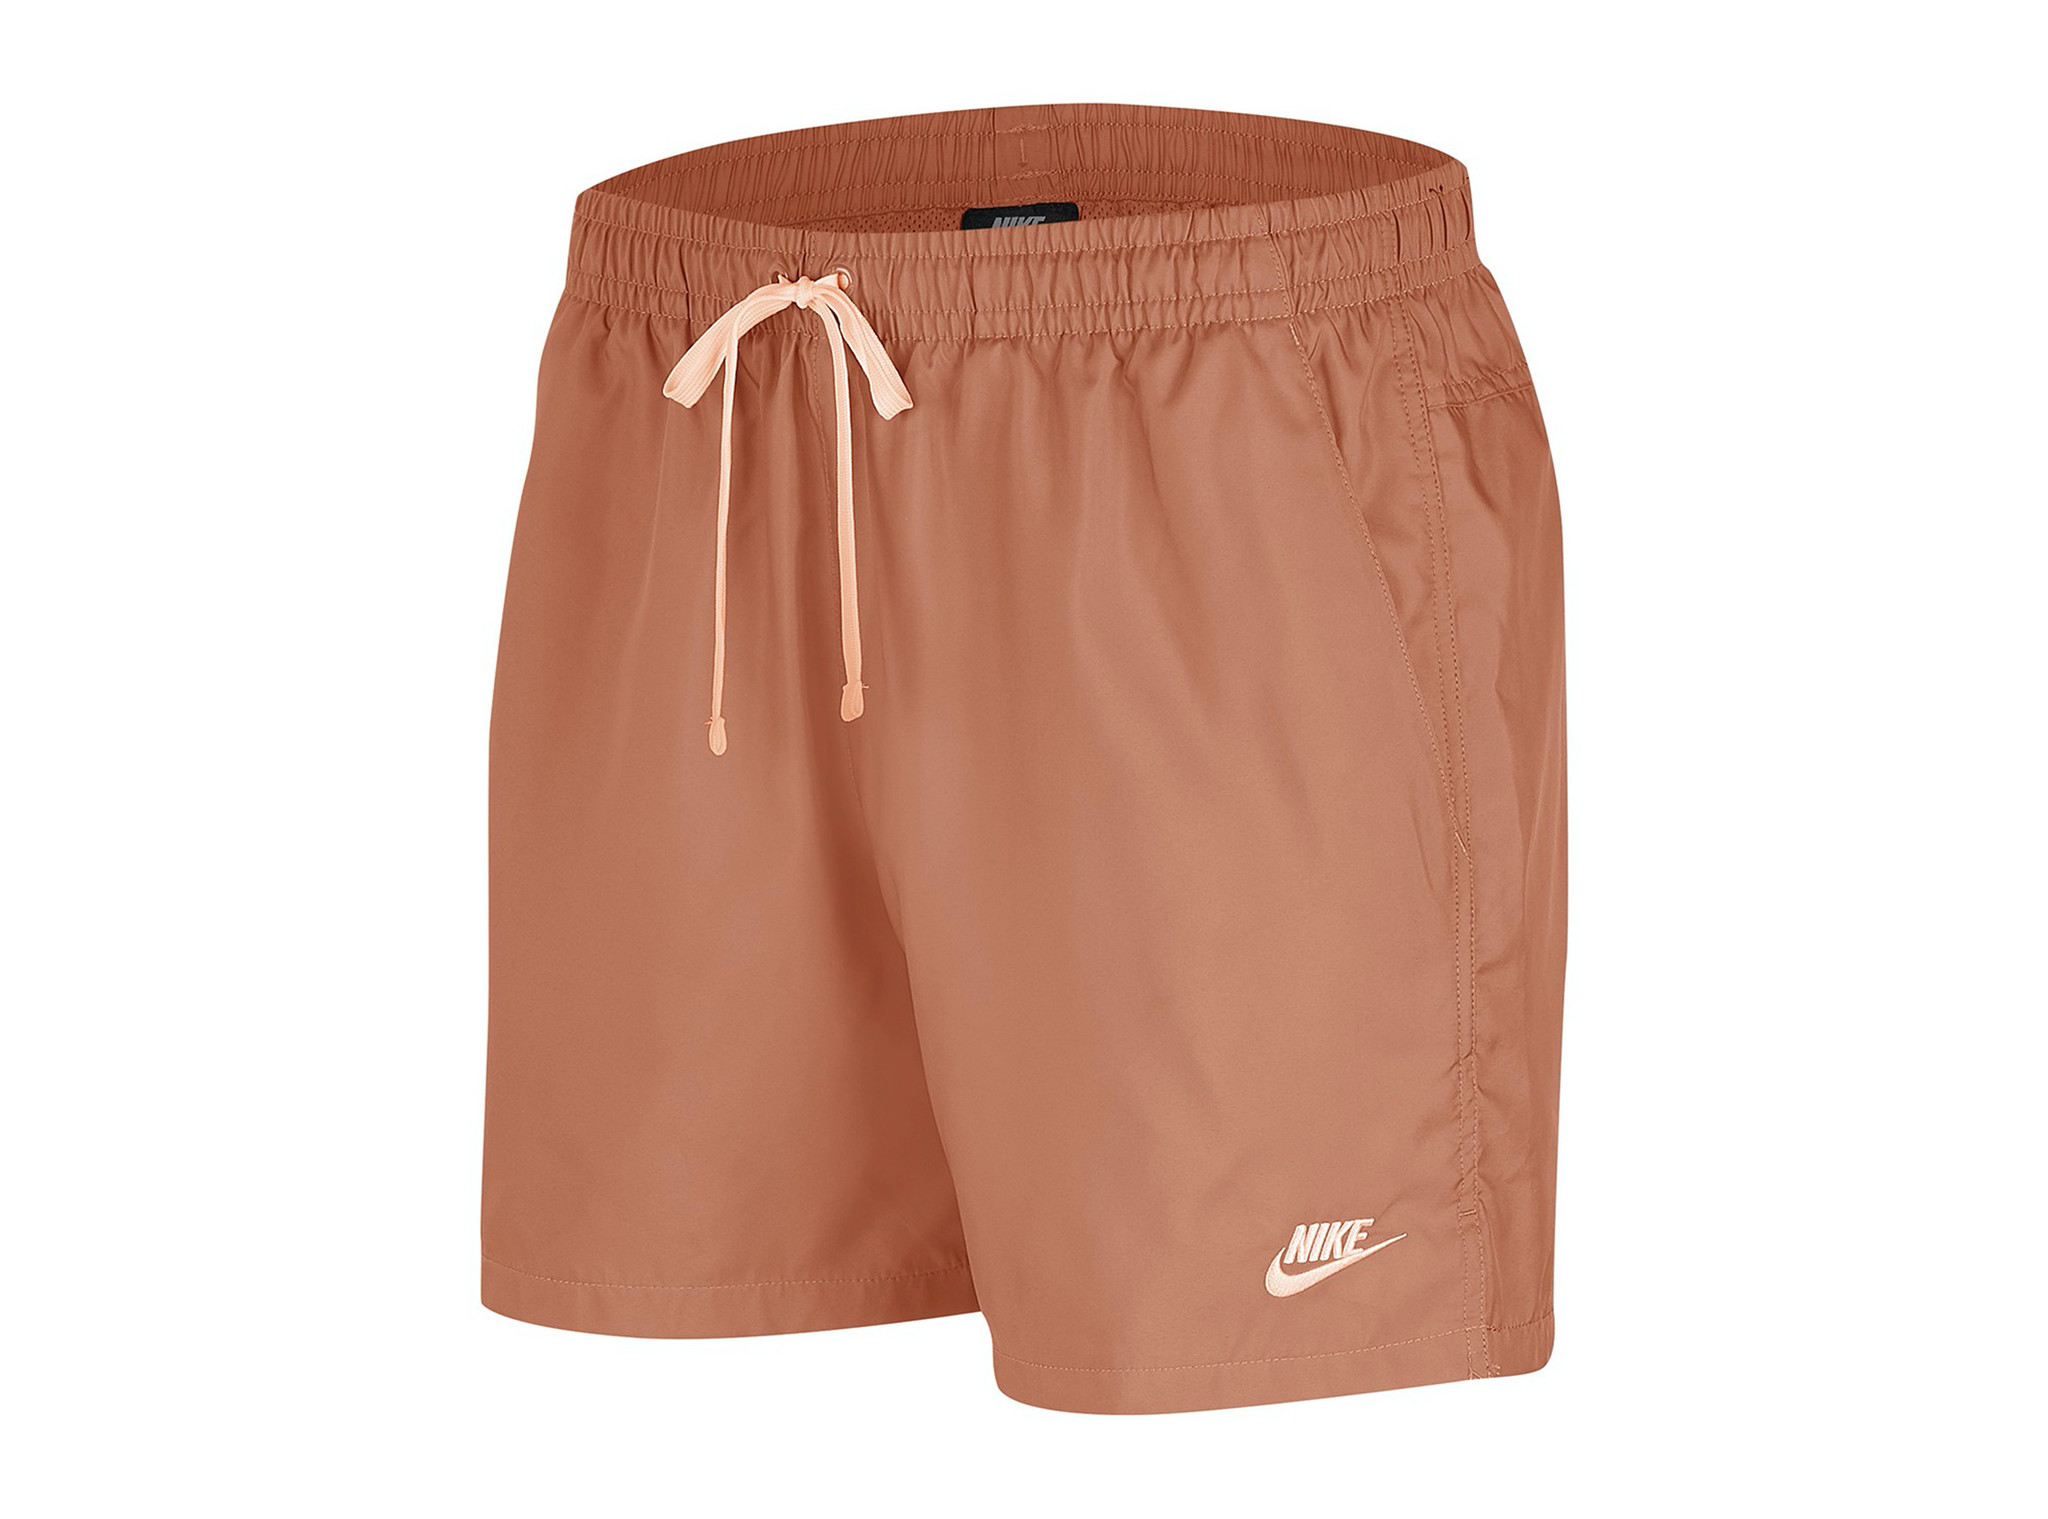 Nsw Sce Short Terra Blush Washed Coral Ar2382 260 Bruut Online Shop Bruut Sneakers Clothing Store